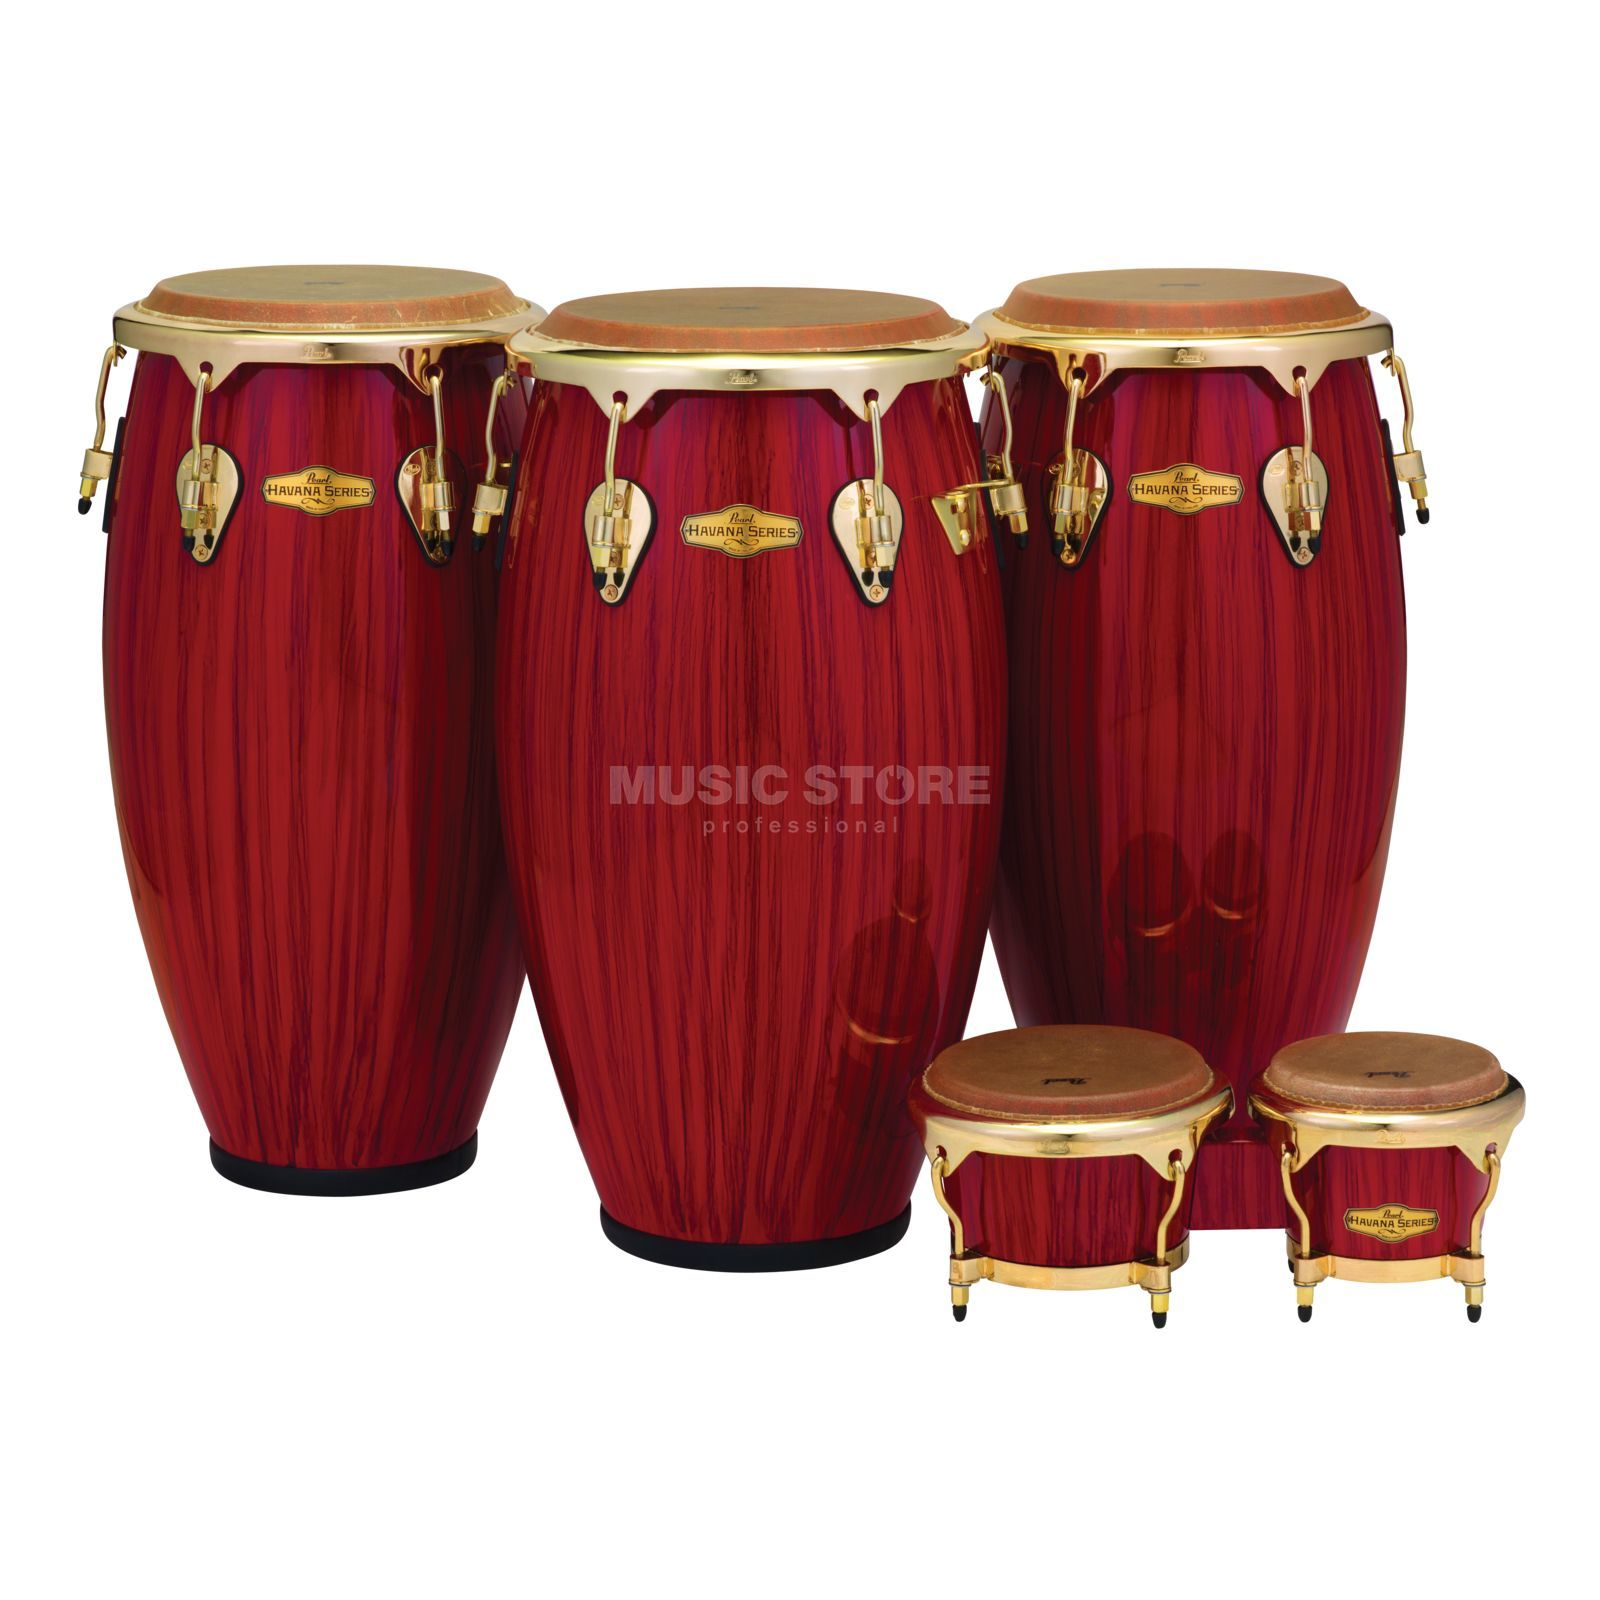 "Pearl Big Belly Havana Conga 11"", Red Tiger Stripe Image du produit"